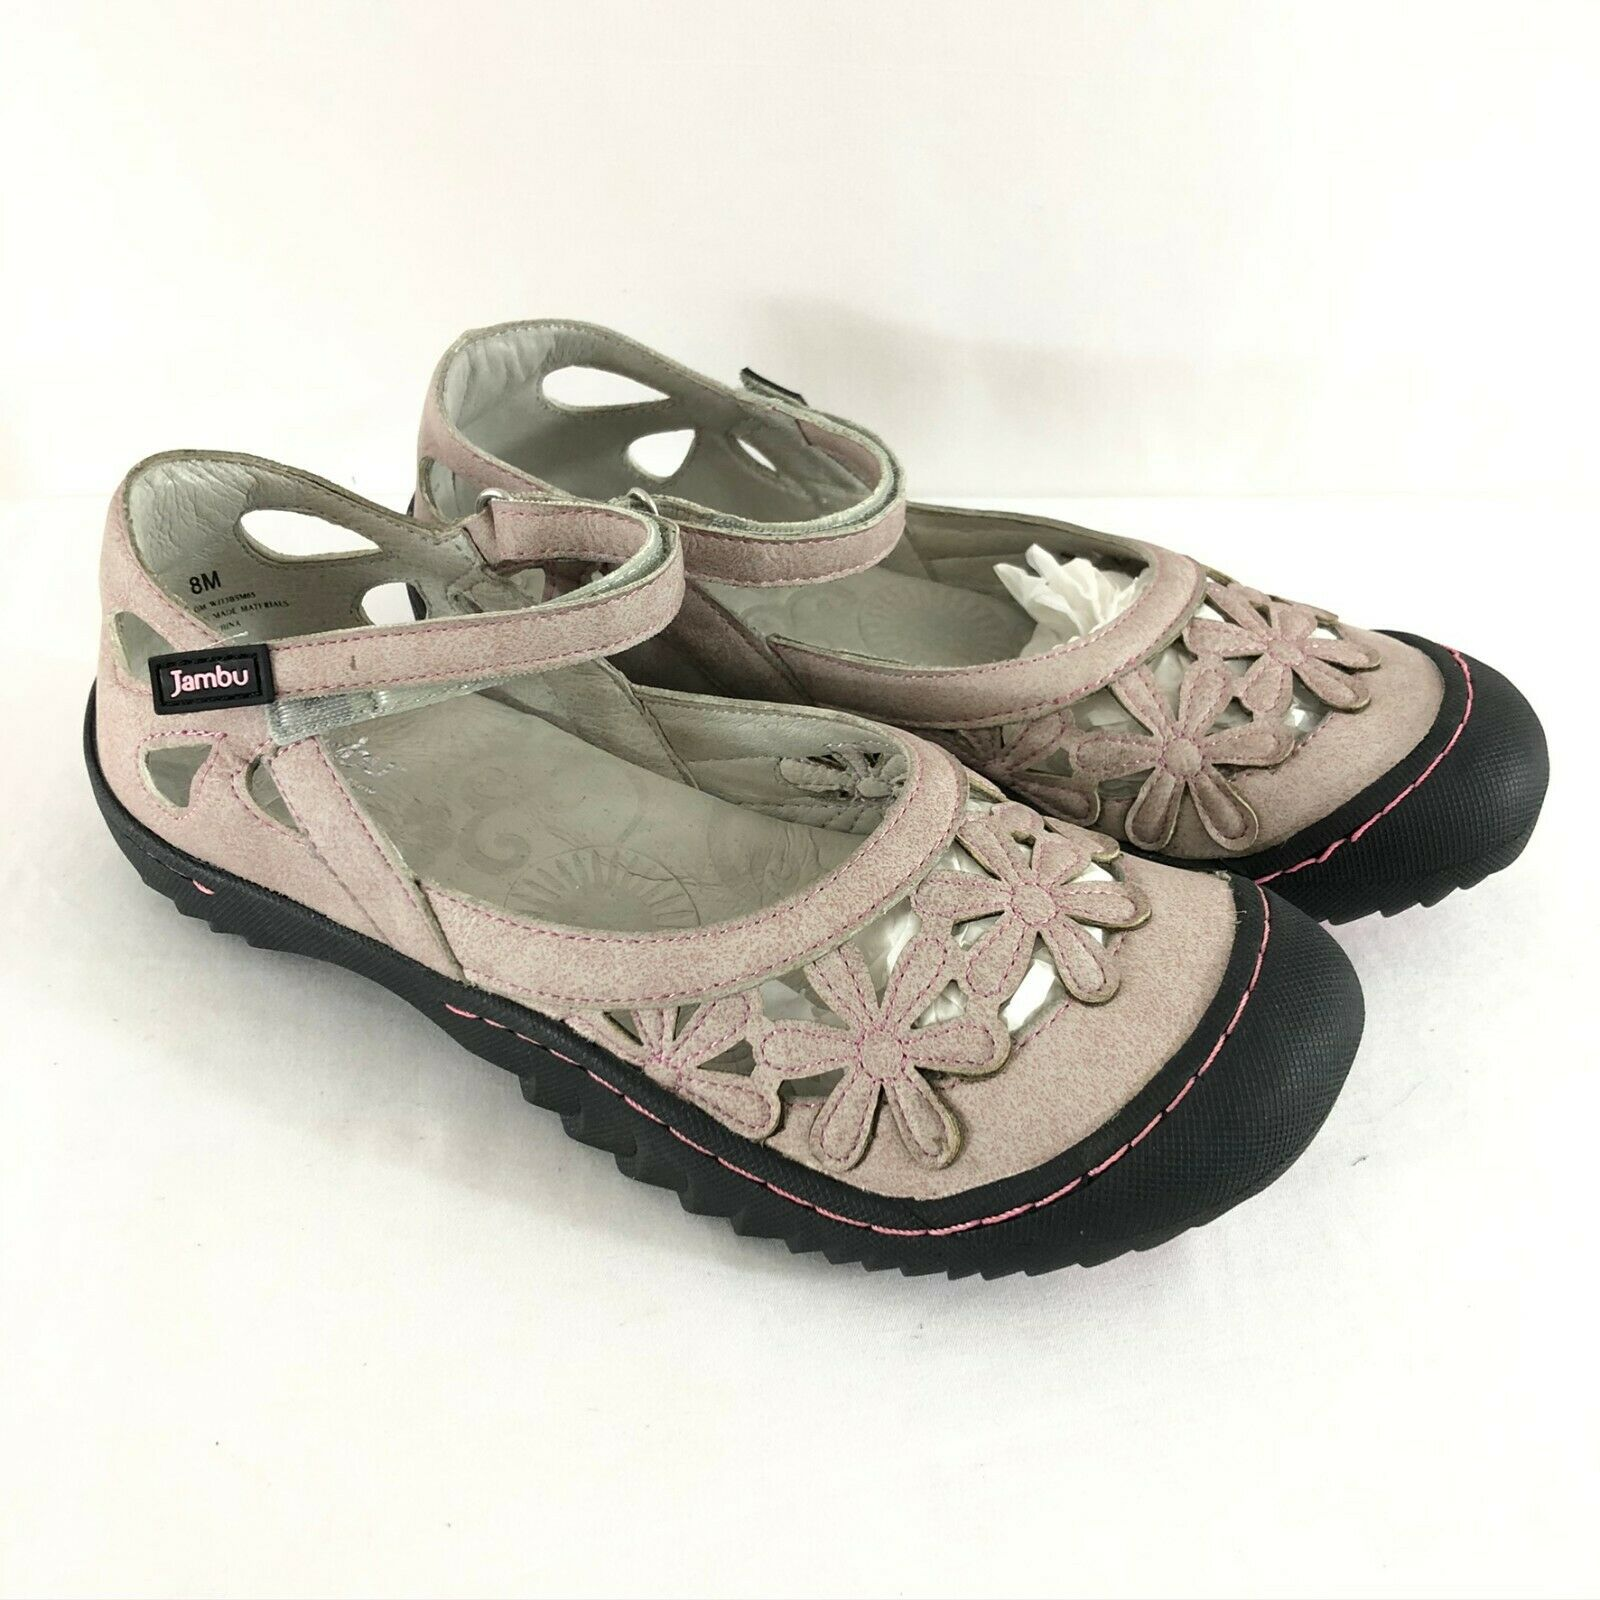 Jambu Womens Flats Mary Jane Floral Faux Leather Ankle Strap